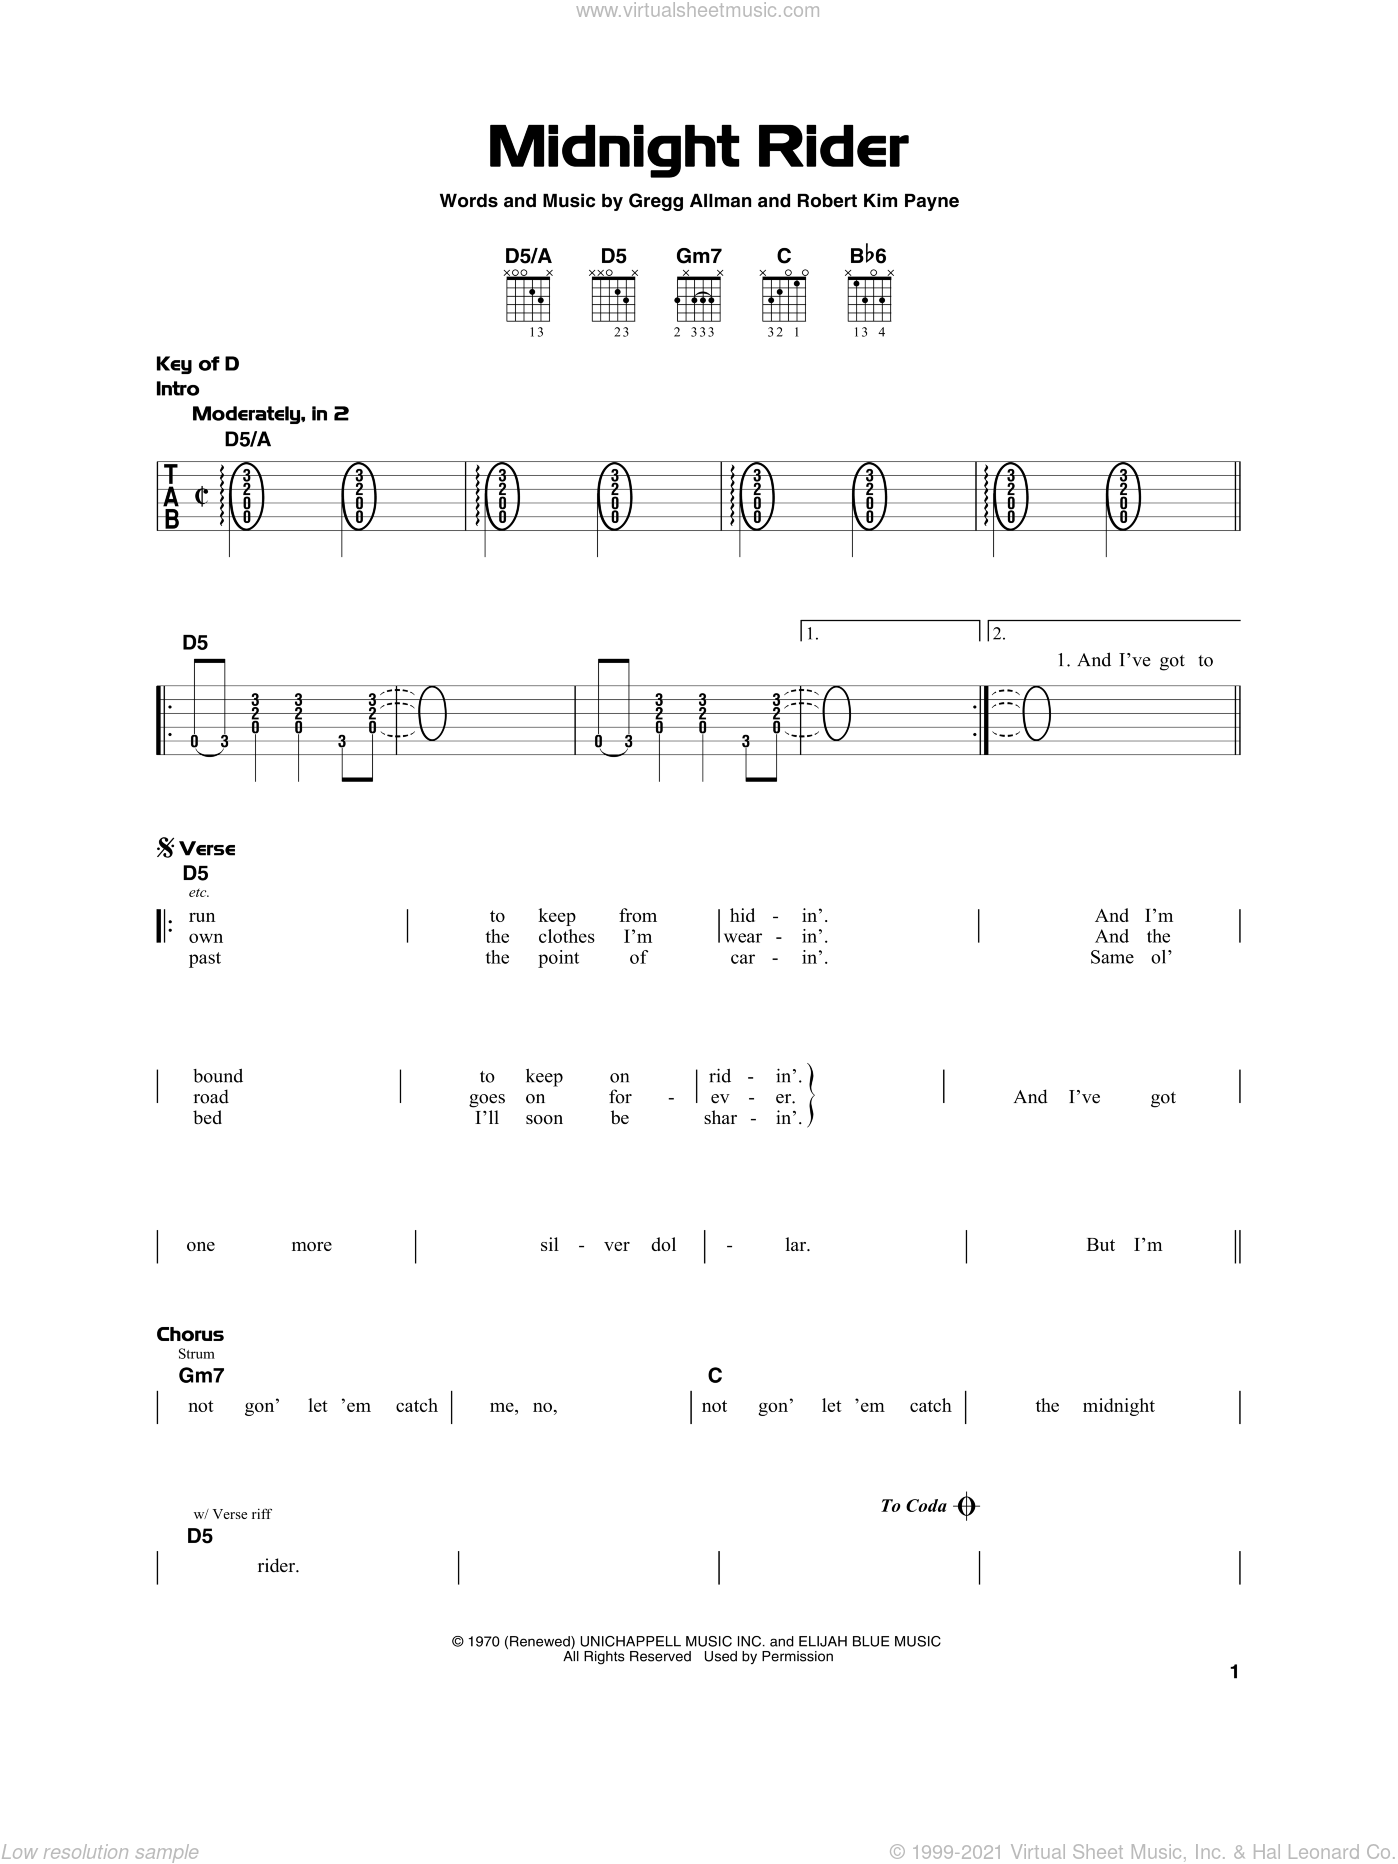 Midnight Rider sheet music for guitar solo by The Allman Brothers Band, Gregg Allman and Robert Kim Payne, beginner skill level